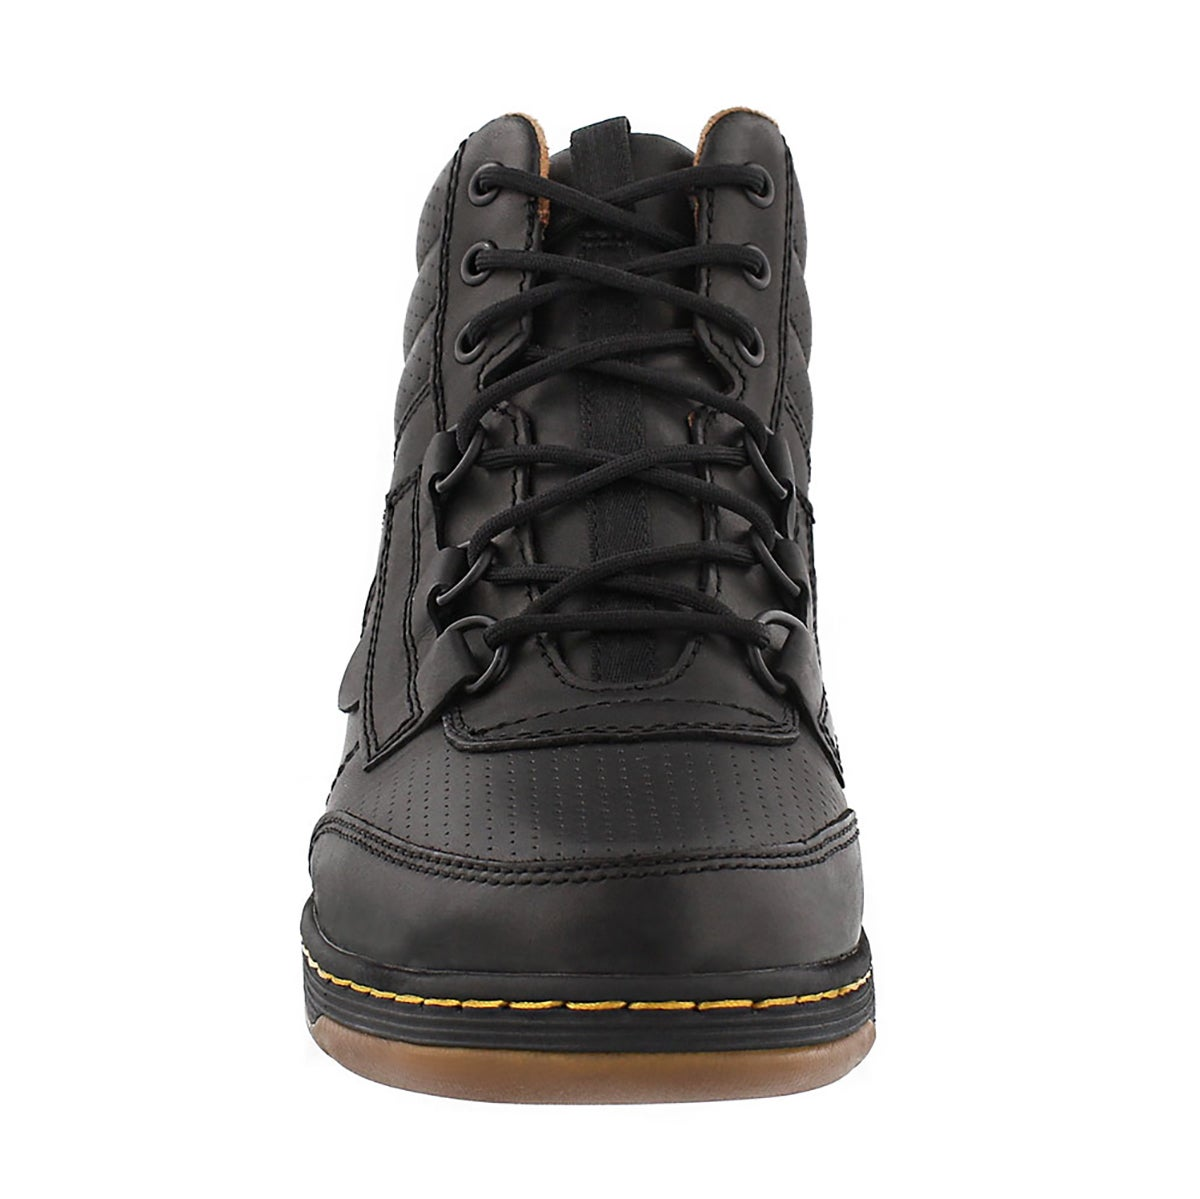 Mns Derry Dm Lite blk casual laceup boot